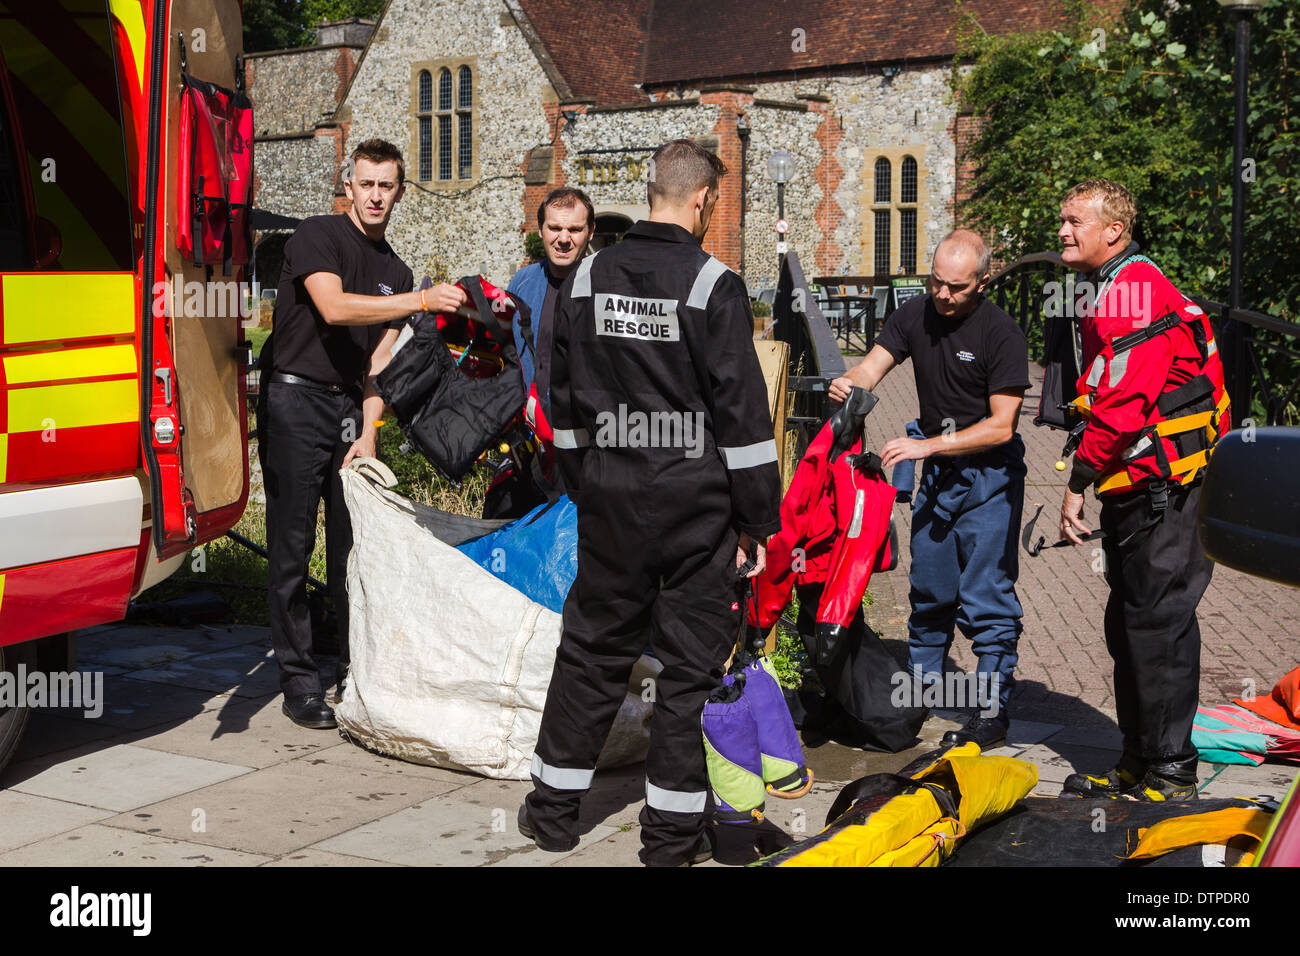 Wiltshire Fire And Rescue Service Stock Photos & Wiltshire Fire And